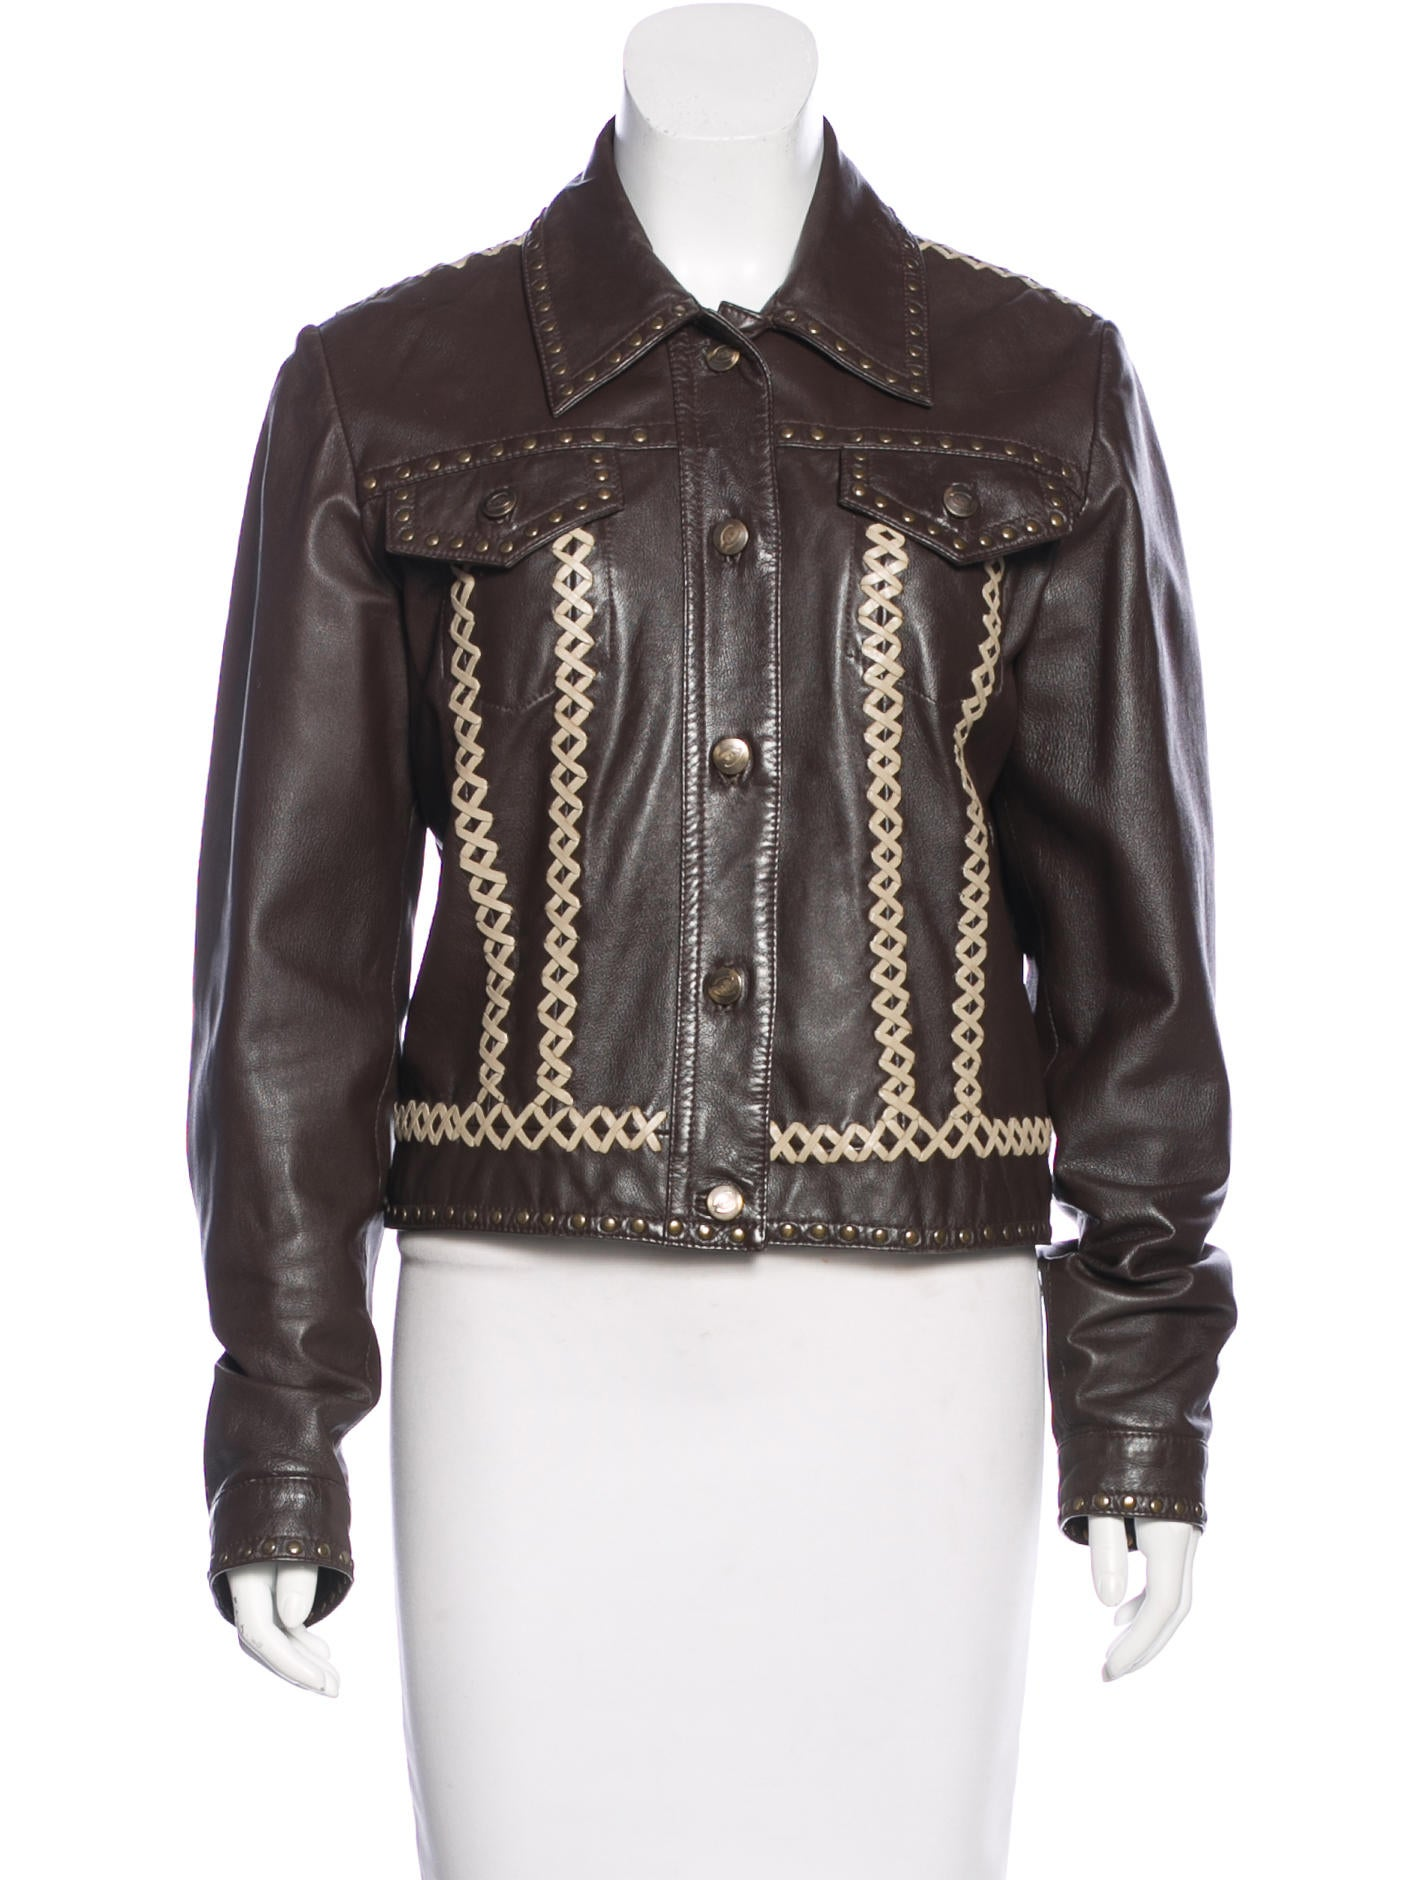 Just jeans leather jackets